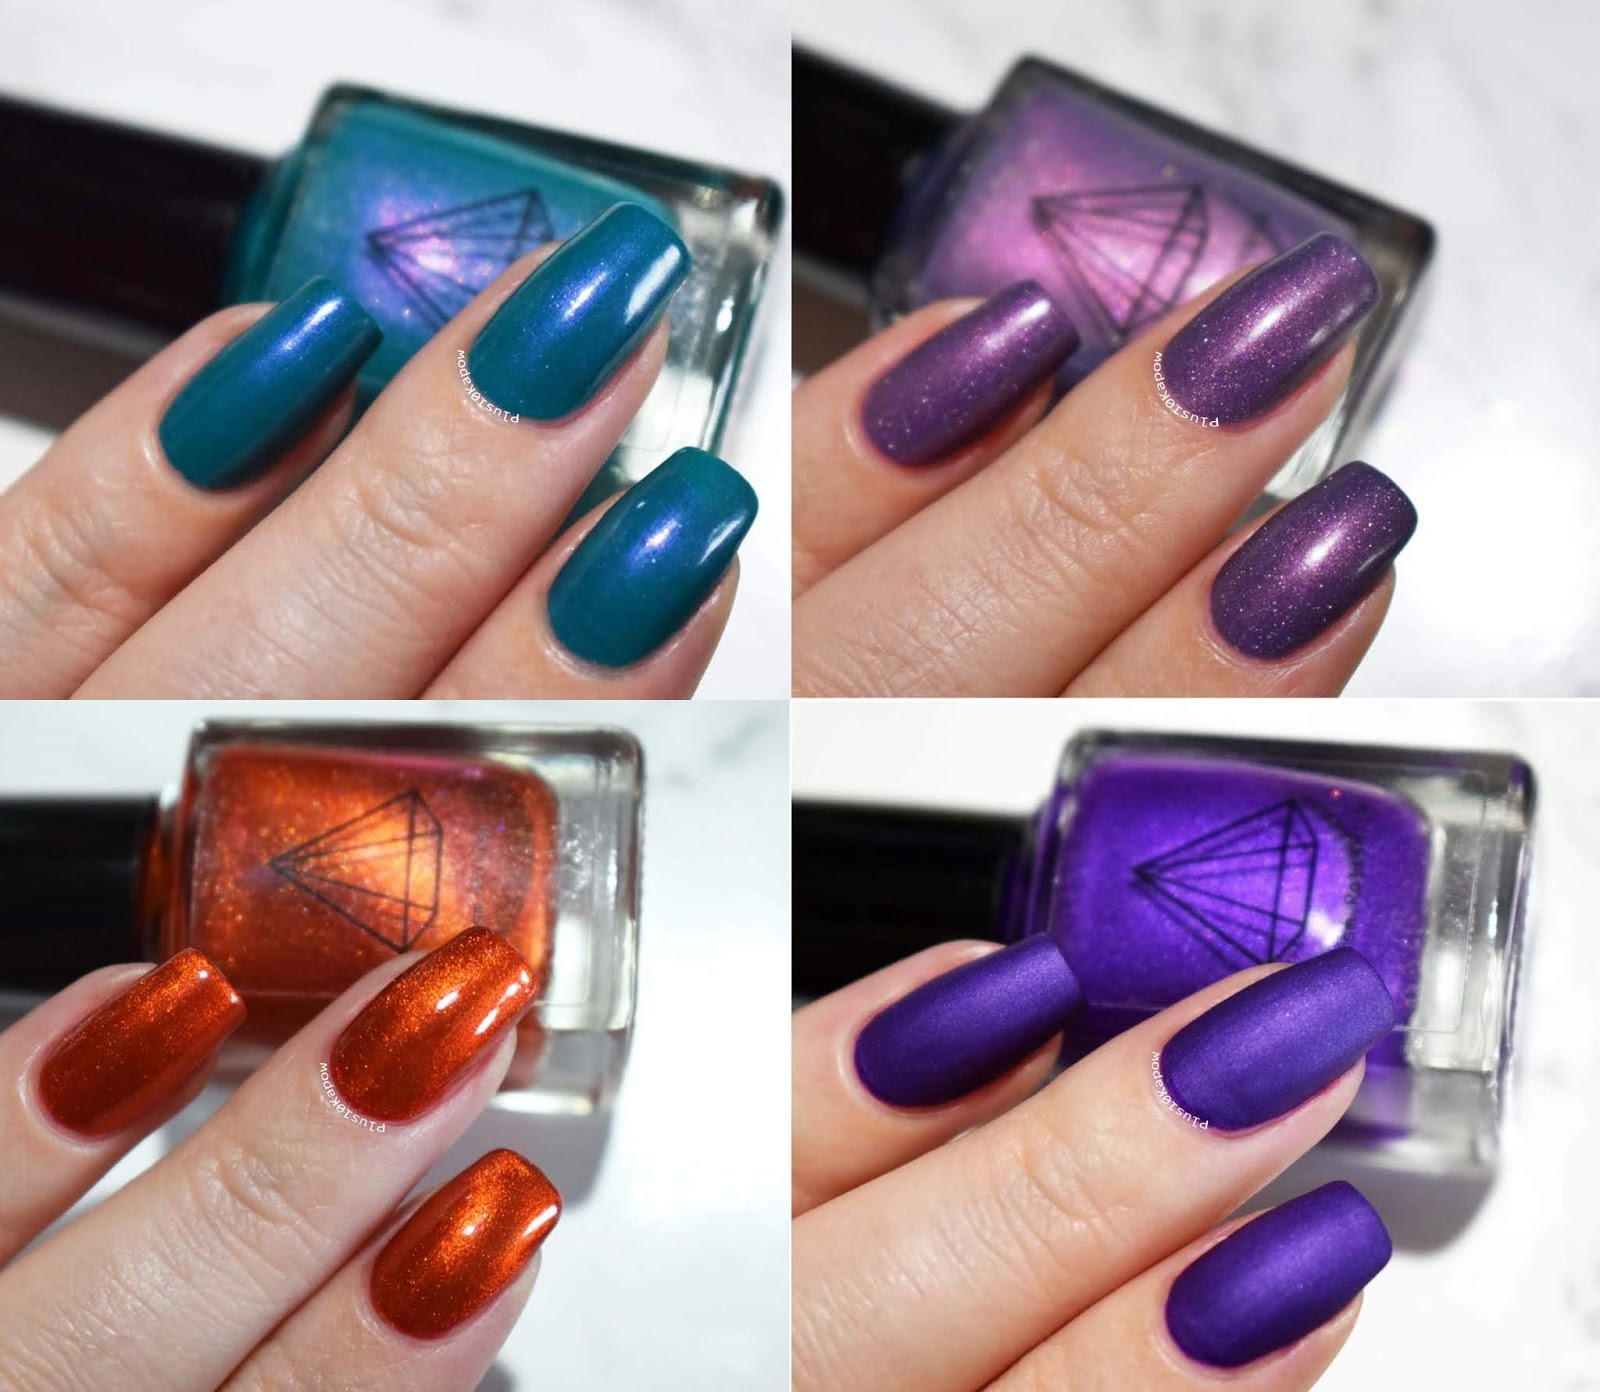 7ac11a90 Good news for all of you struggling to think of something to spend your  Christmas pennies on, Prism Polish has got your back! The all new Too Much  Month for ...